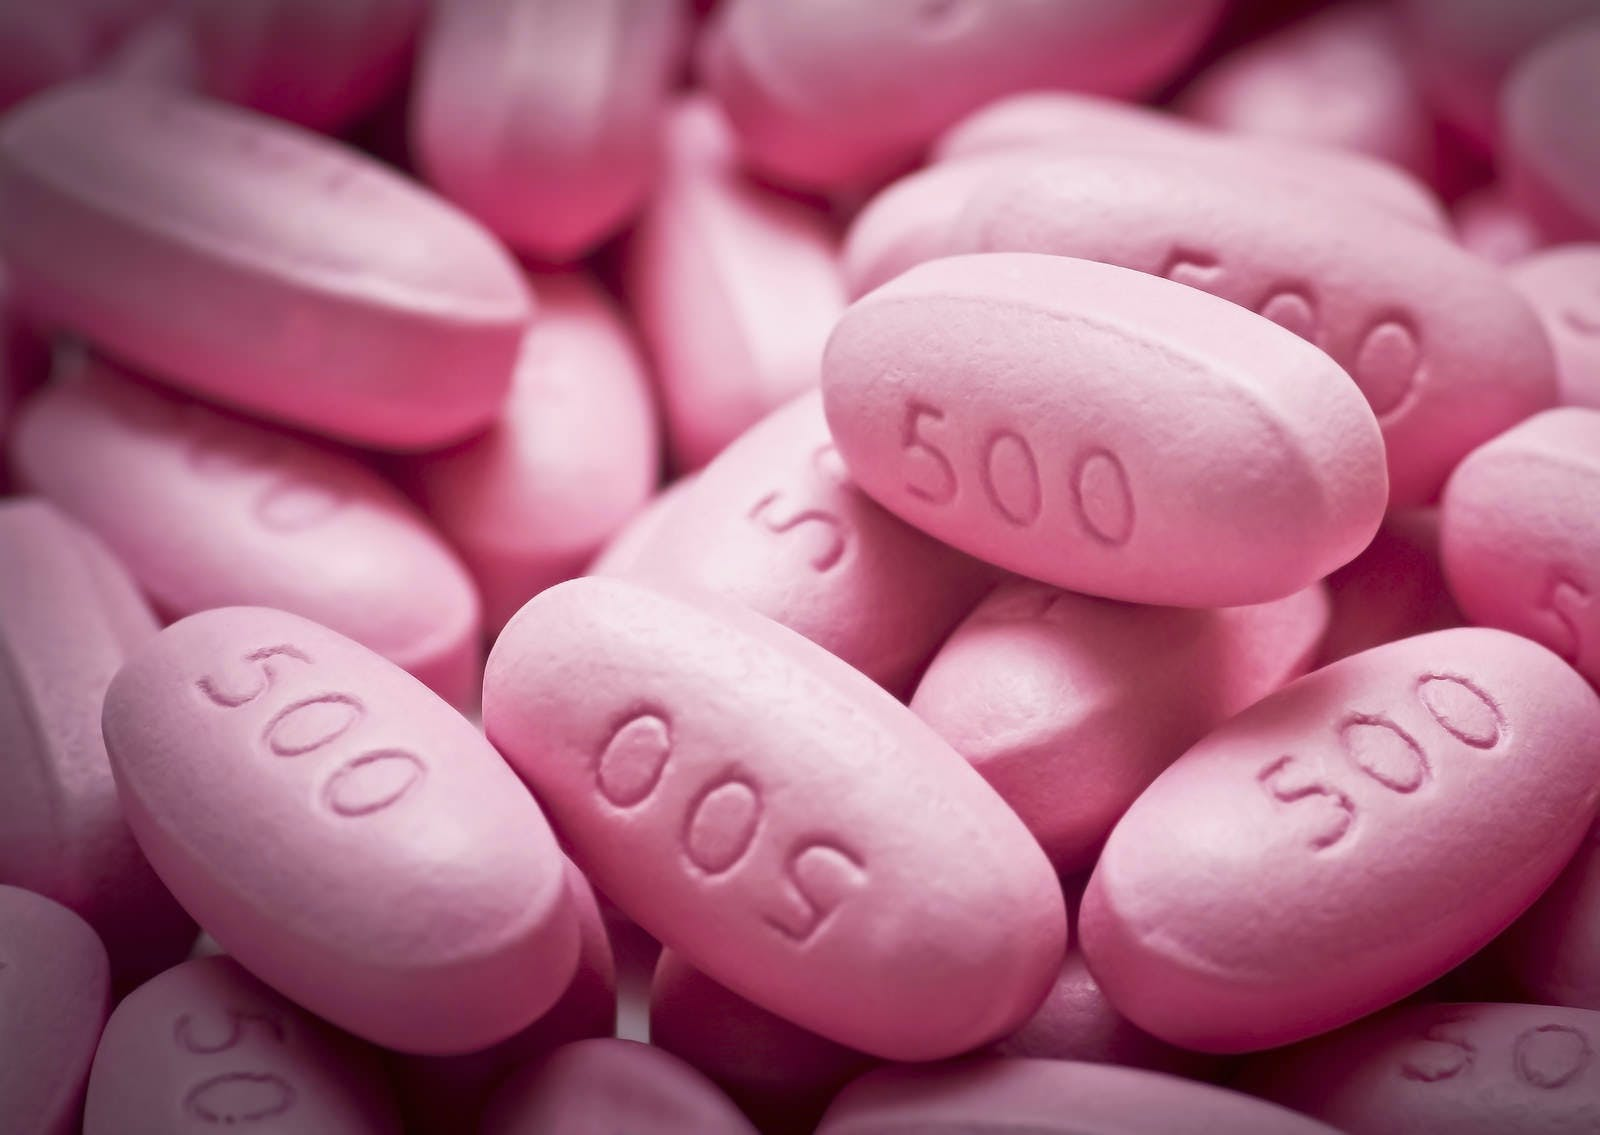 Close-up of many pink 500 milligrams pills.